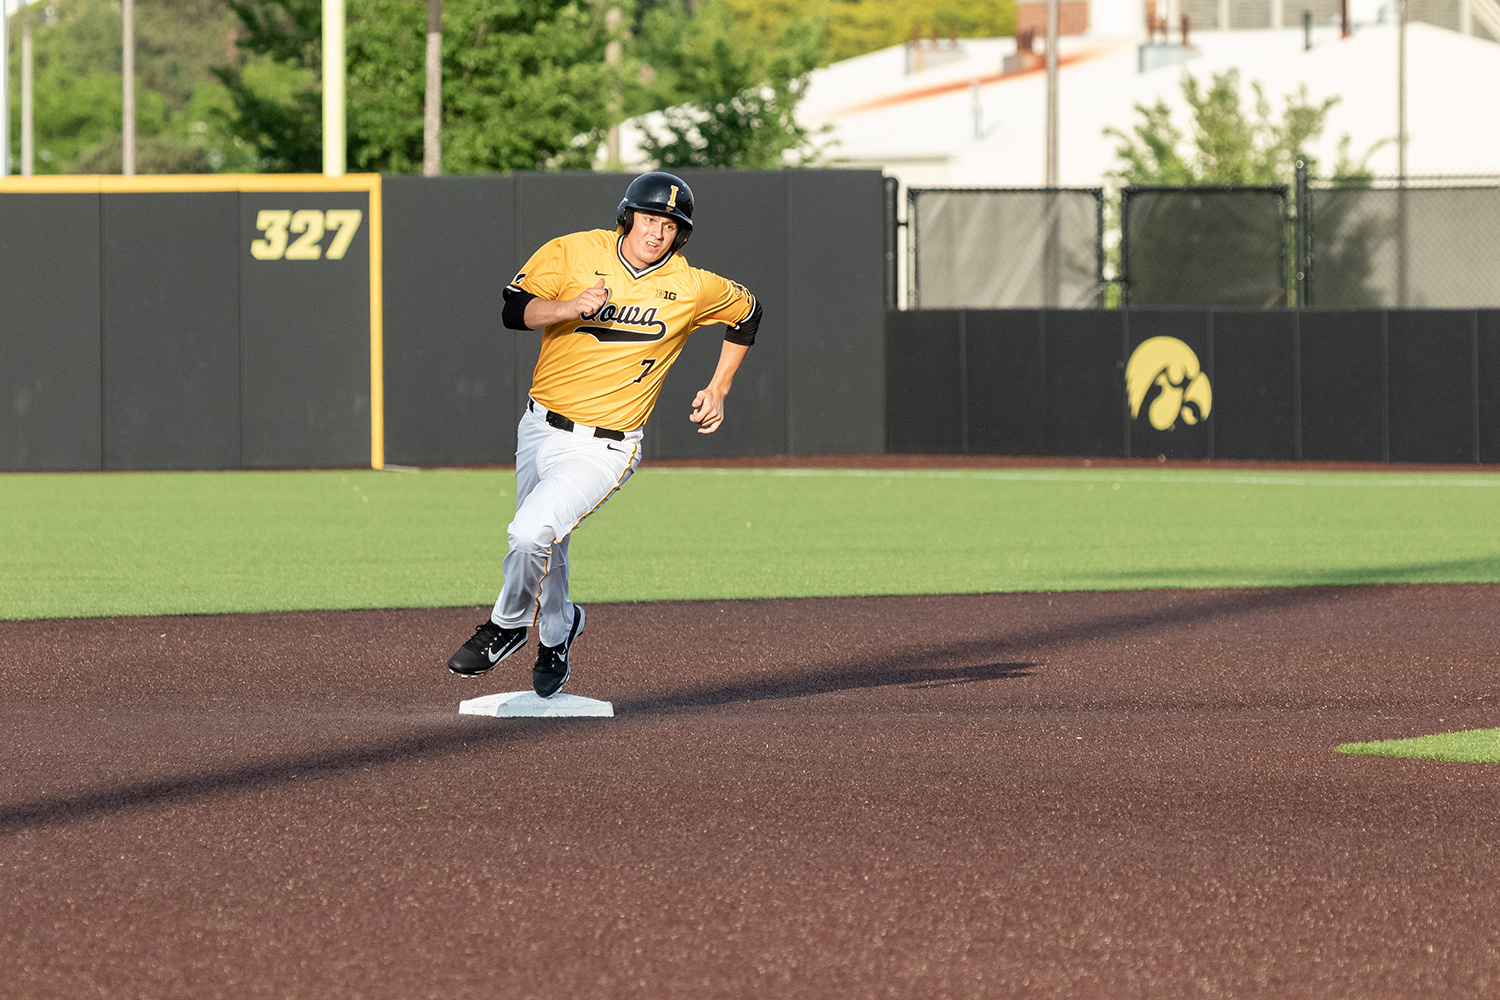 University of Iowa baseball player Grant Judkins rounds second base during a game against Penn State University on Saturday, May 19, 2018. The Hawkeyes defeated the Nittany Lions 8-4.